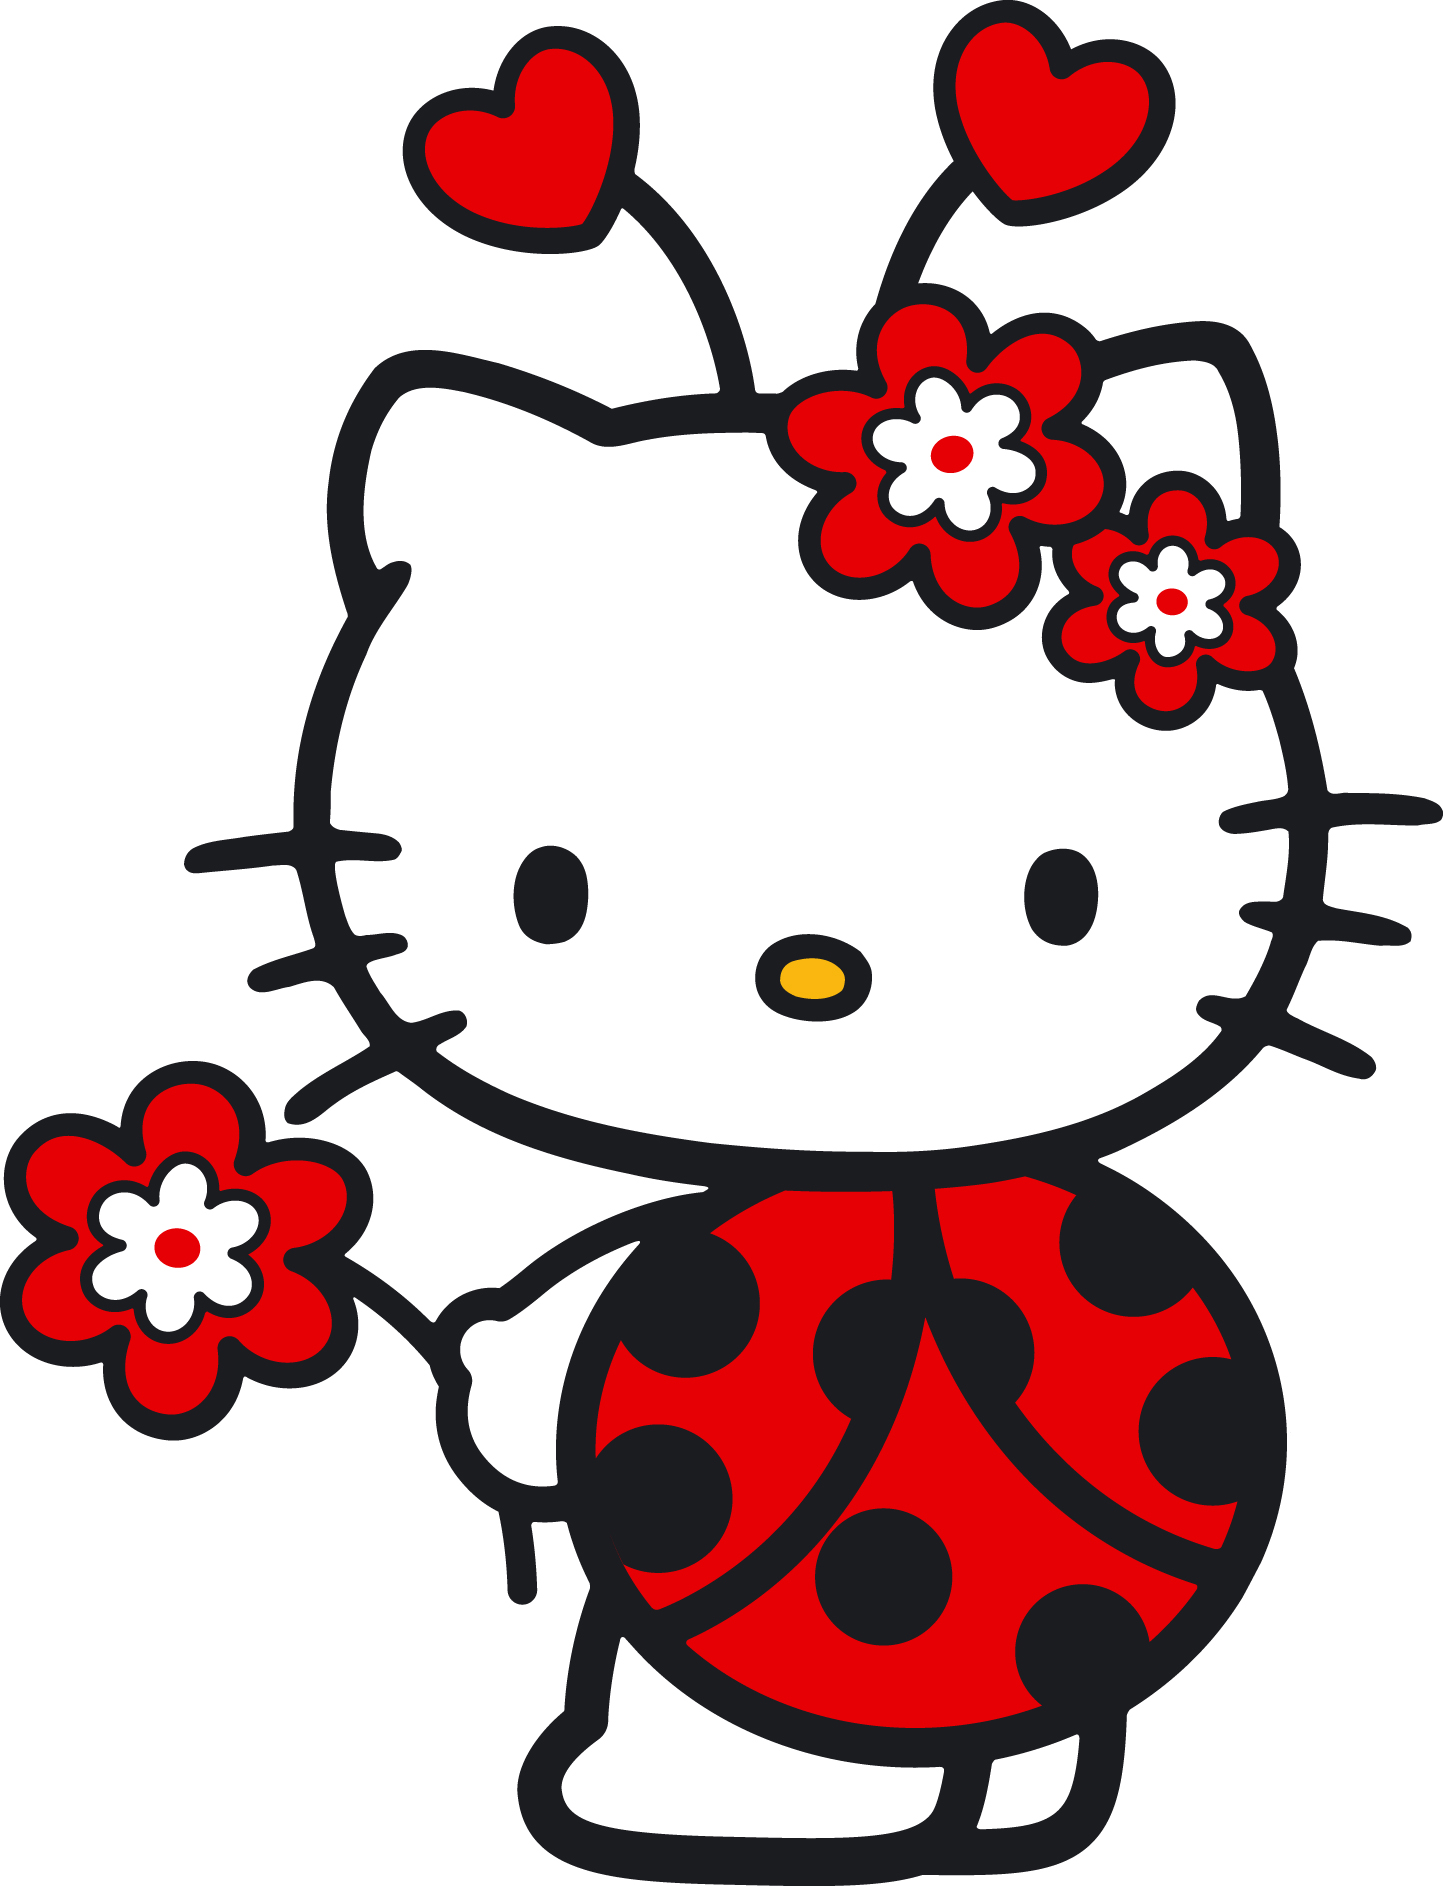 Bees clipart hello kitty Cliparts Kitty Punk Wallpapers Cliparts